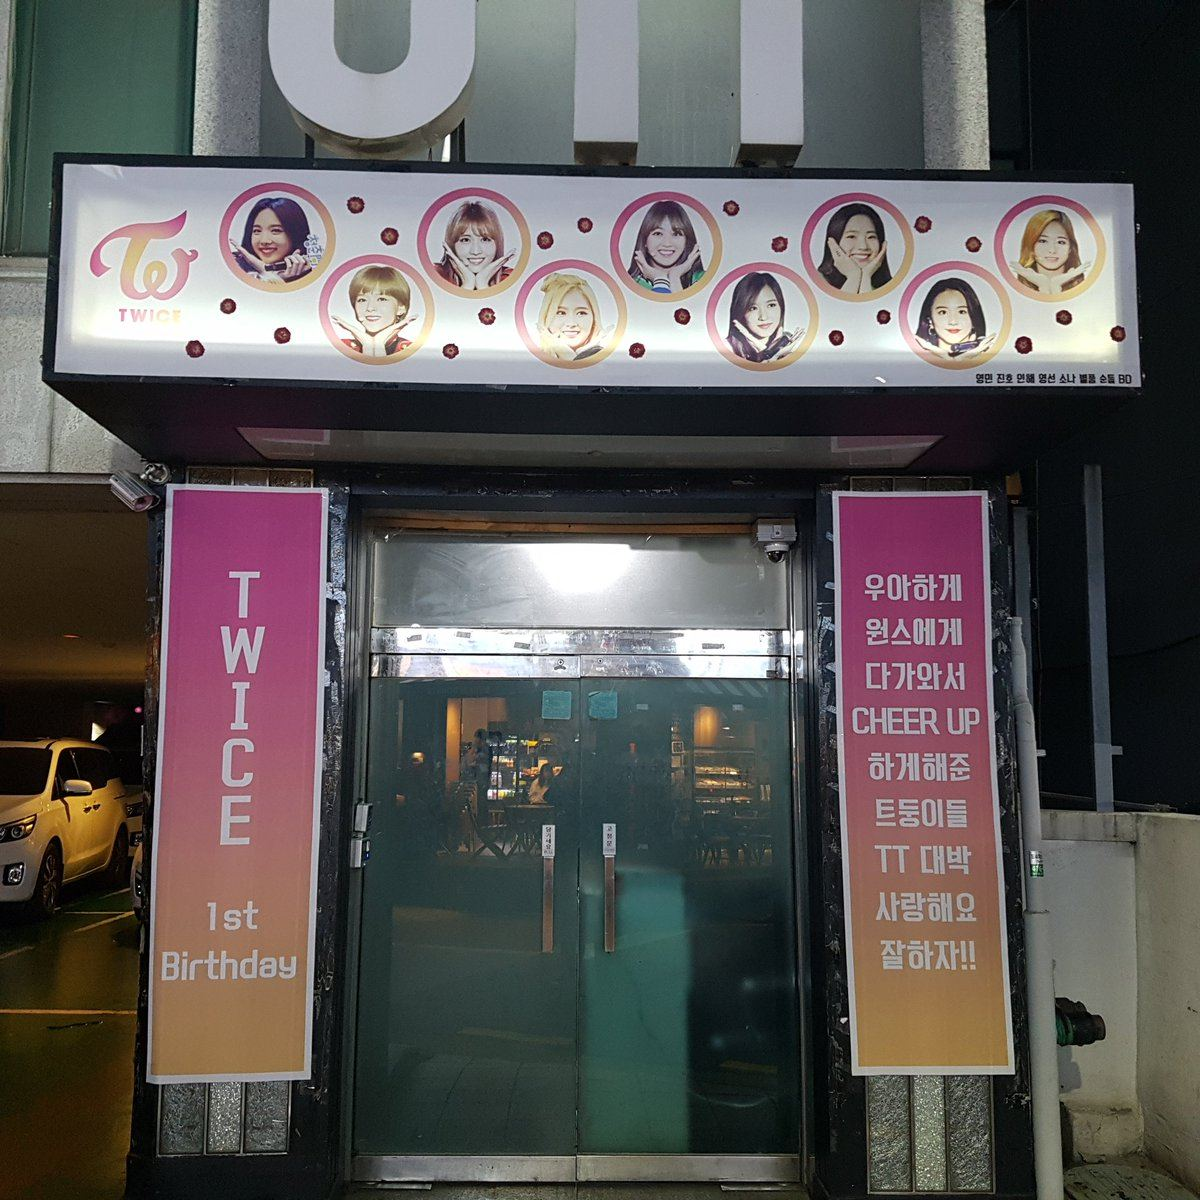 TWICE banners in front of the JYP Entertainment building